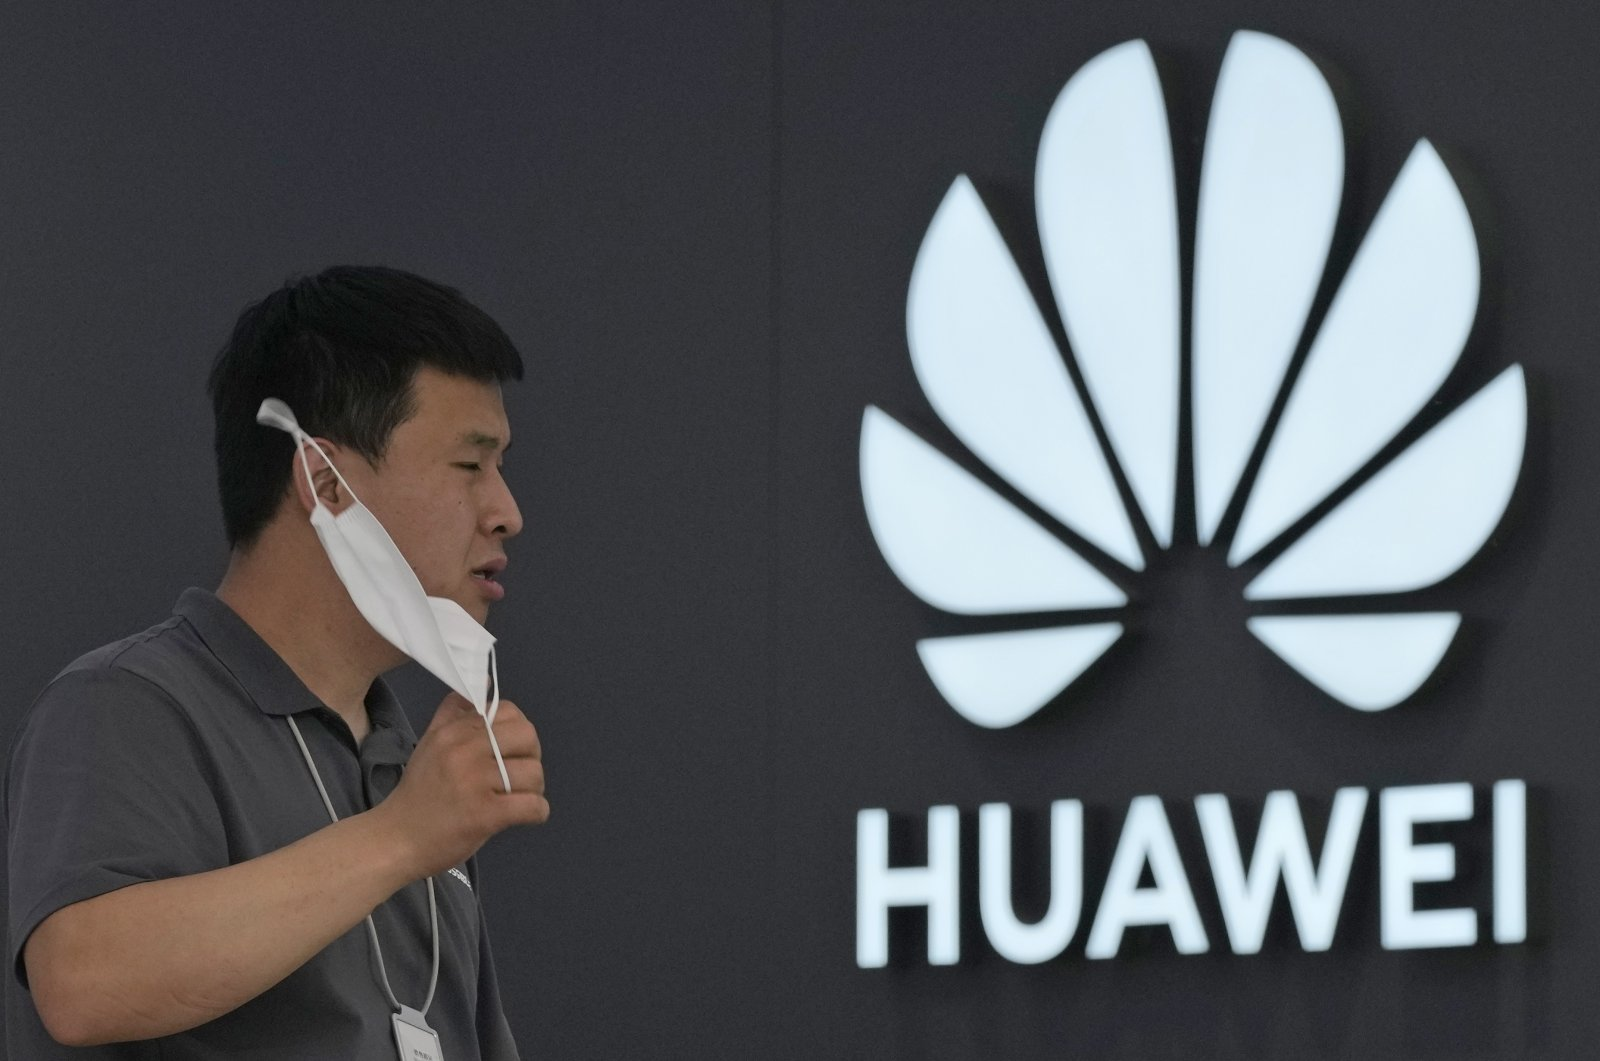 A worker waits for customers inside a Huawei store in Beijing, China, on June 2, 2021. (AP Photo)